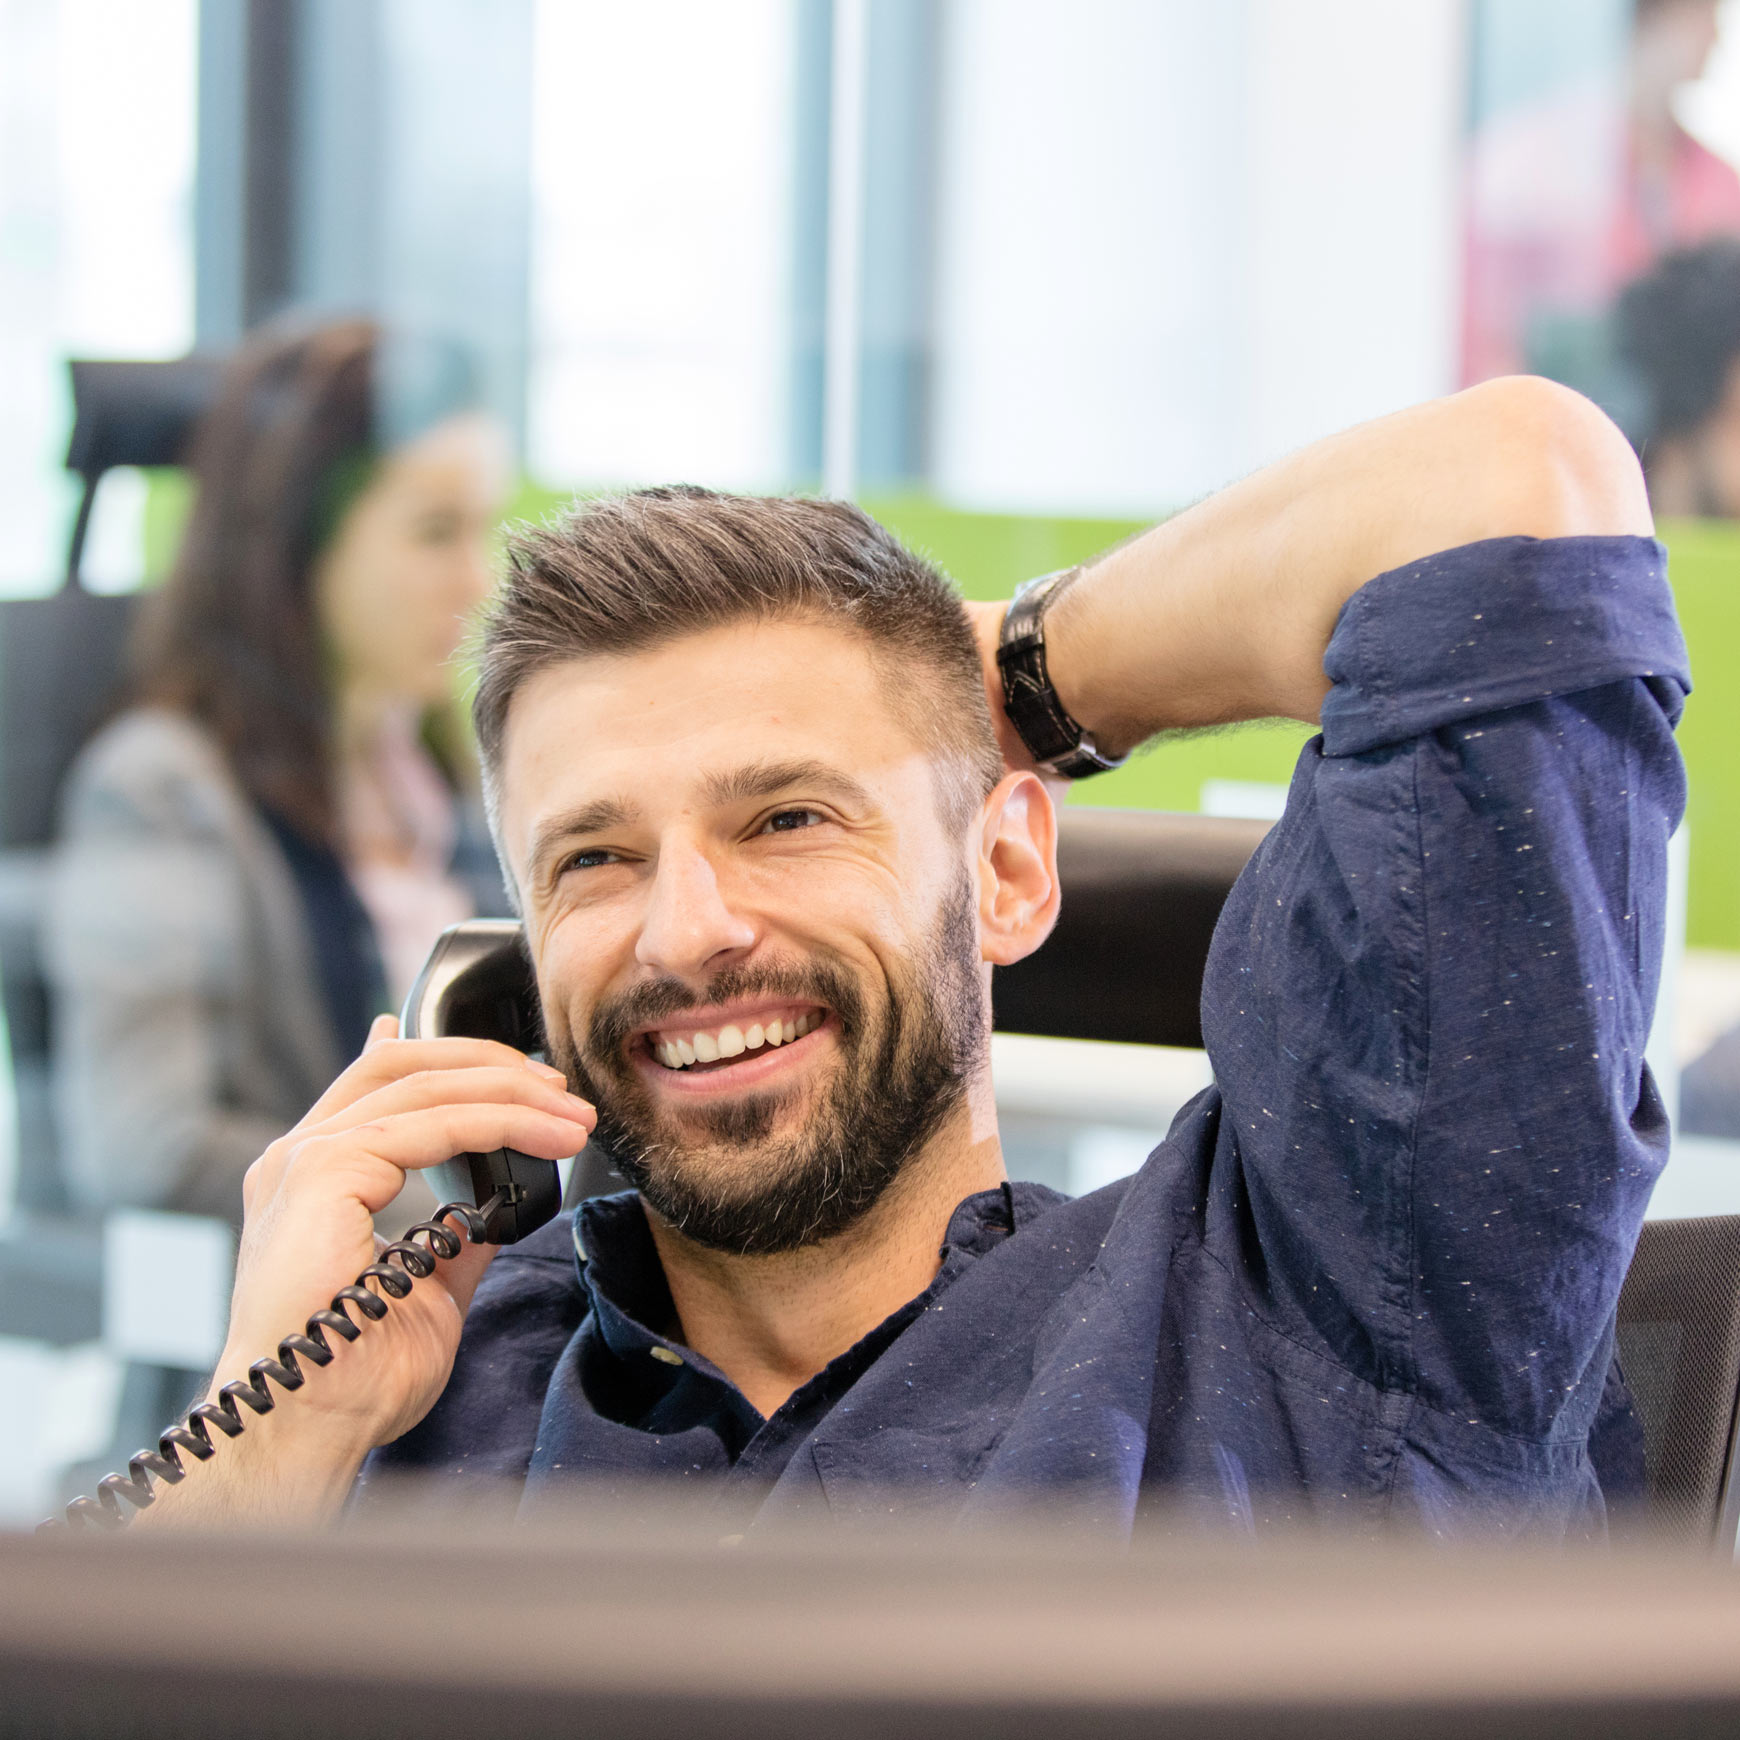 male employee on the phone and smiling in an office